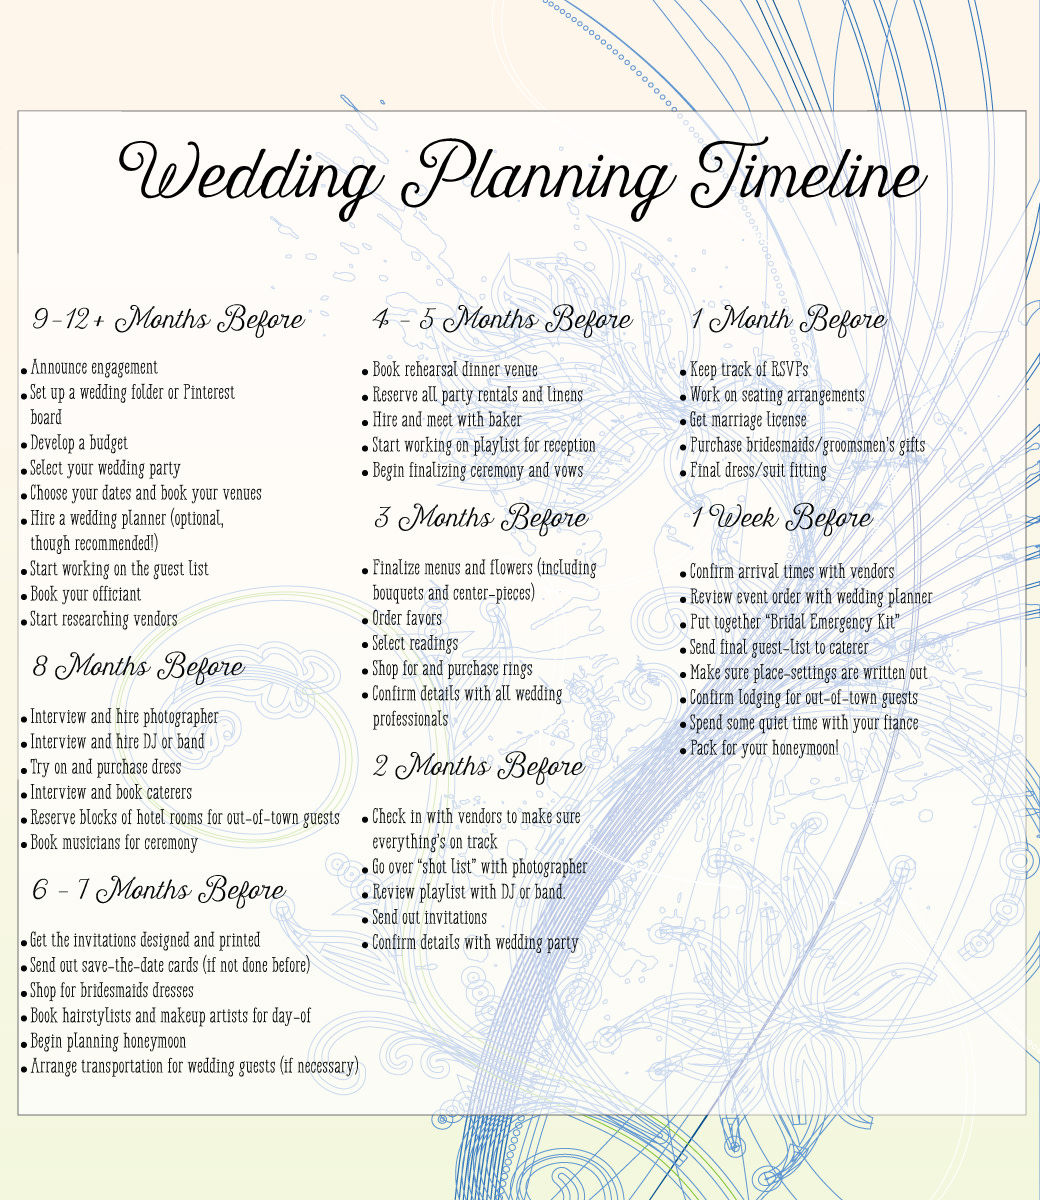 This timeline will help you keep track of all your wedding plans.